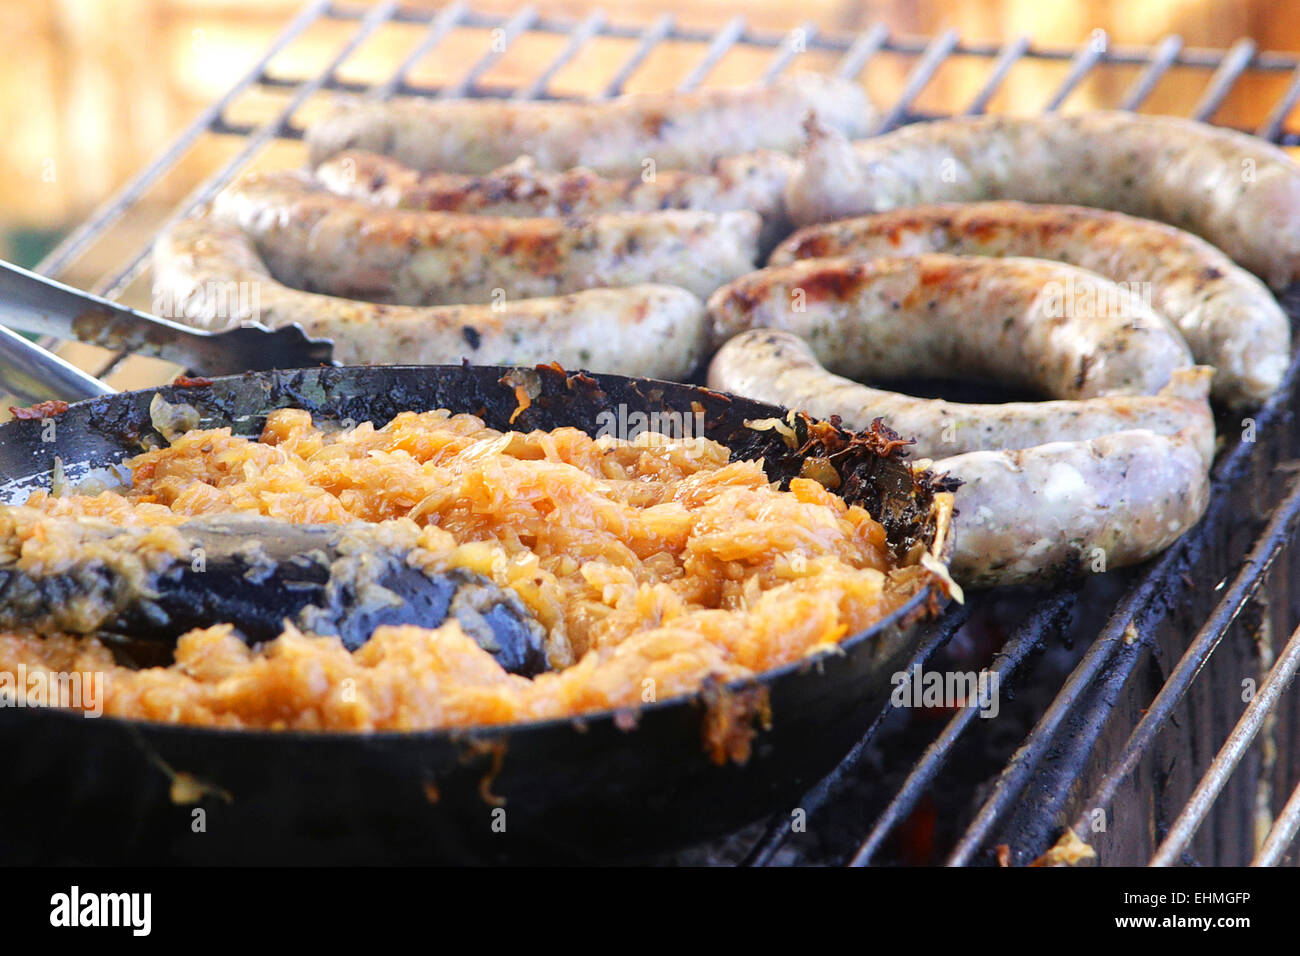 traditional europen food sausages with sauerkraut - Stock Image